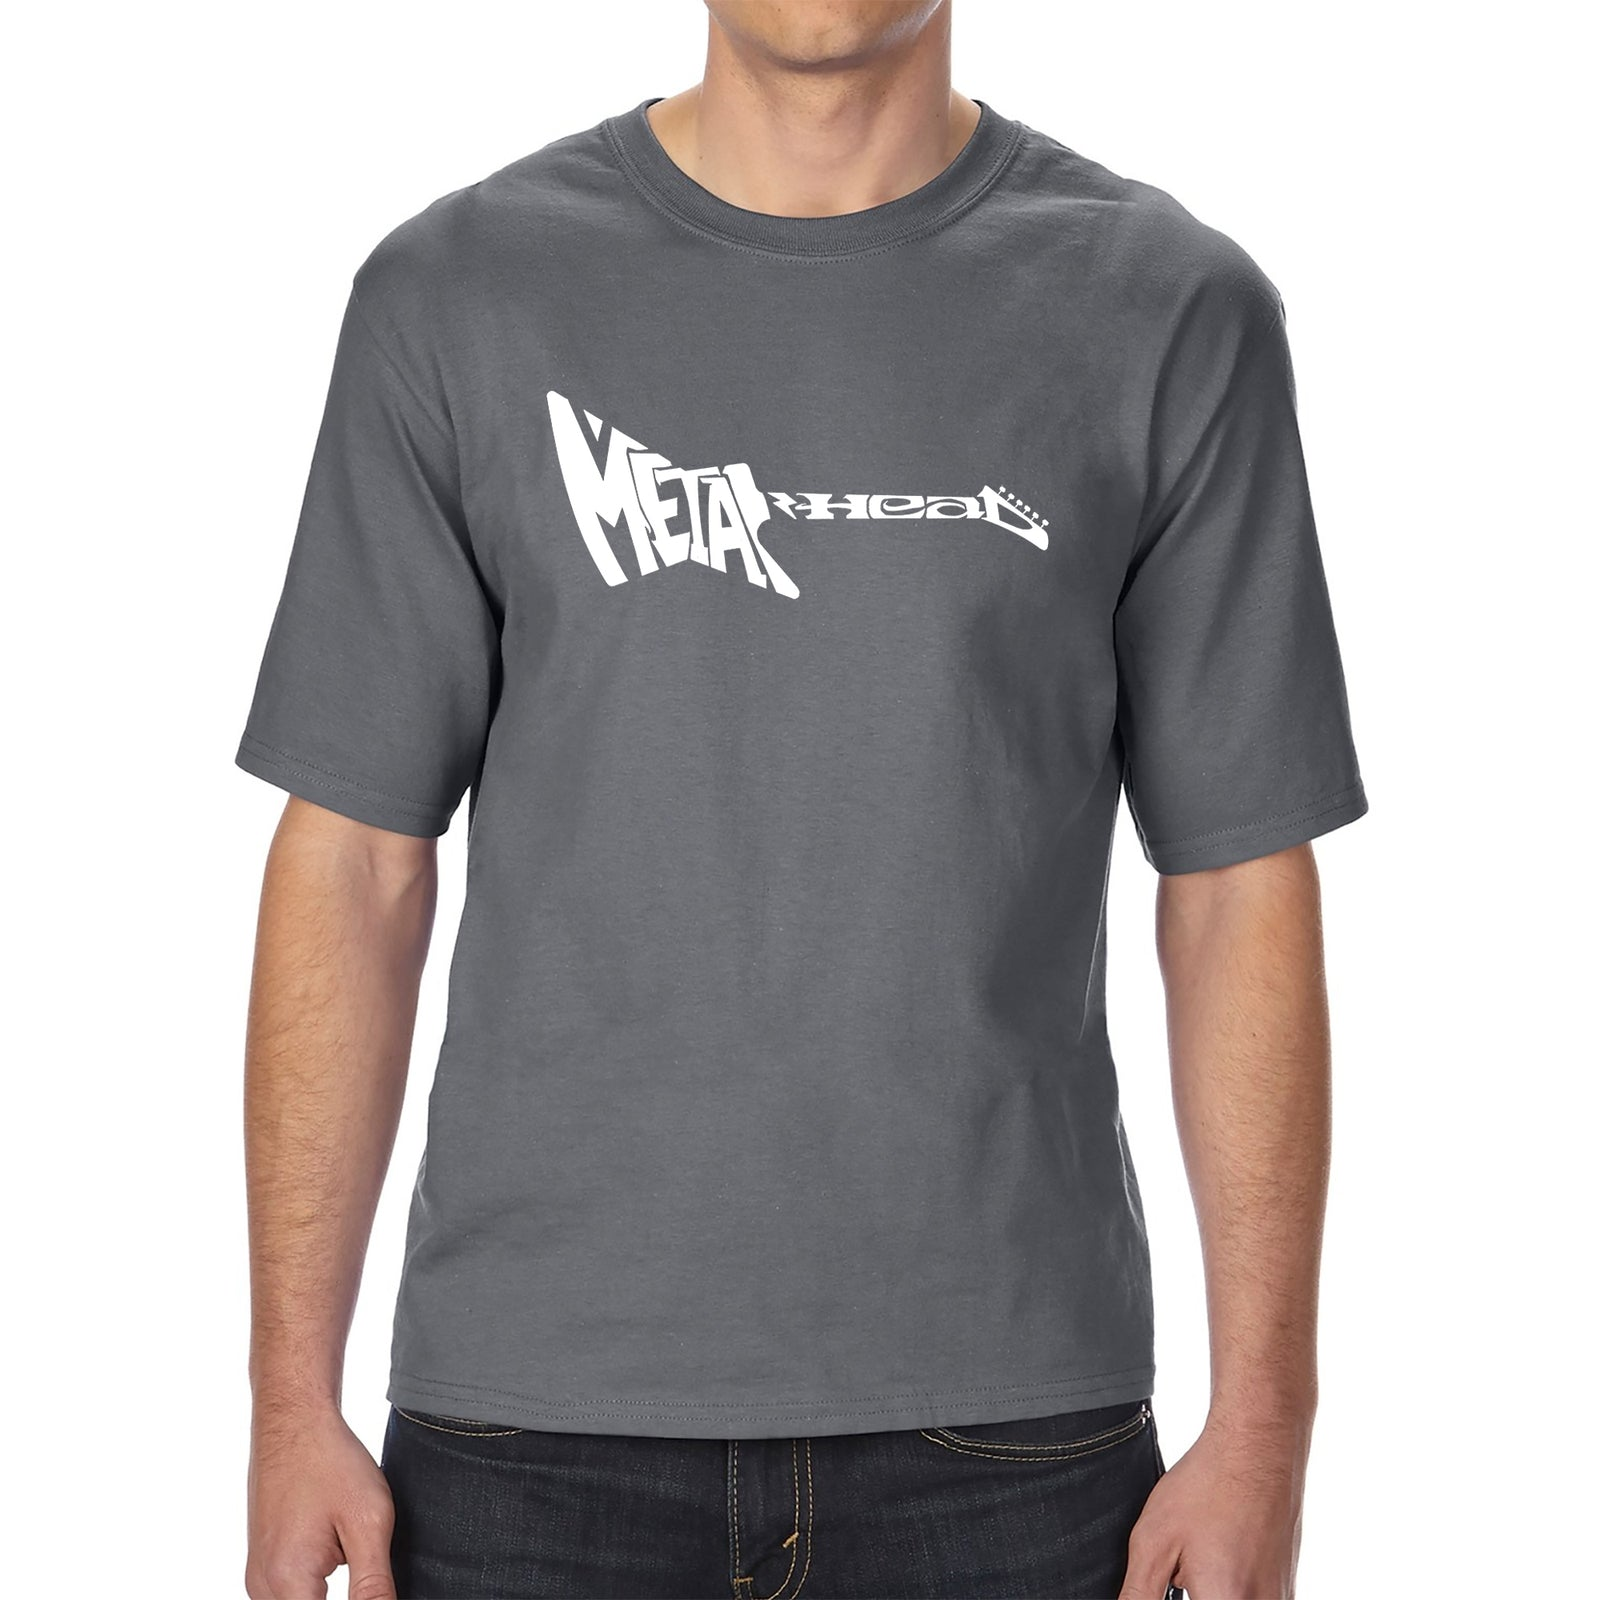 Men's Tall and Long Word Art T-shirt - Metal Head